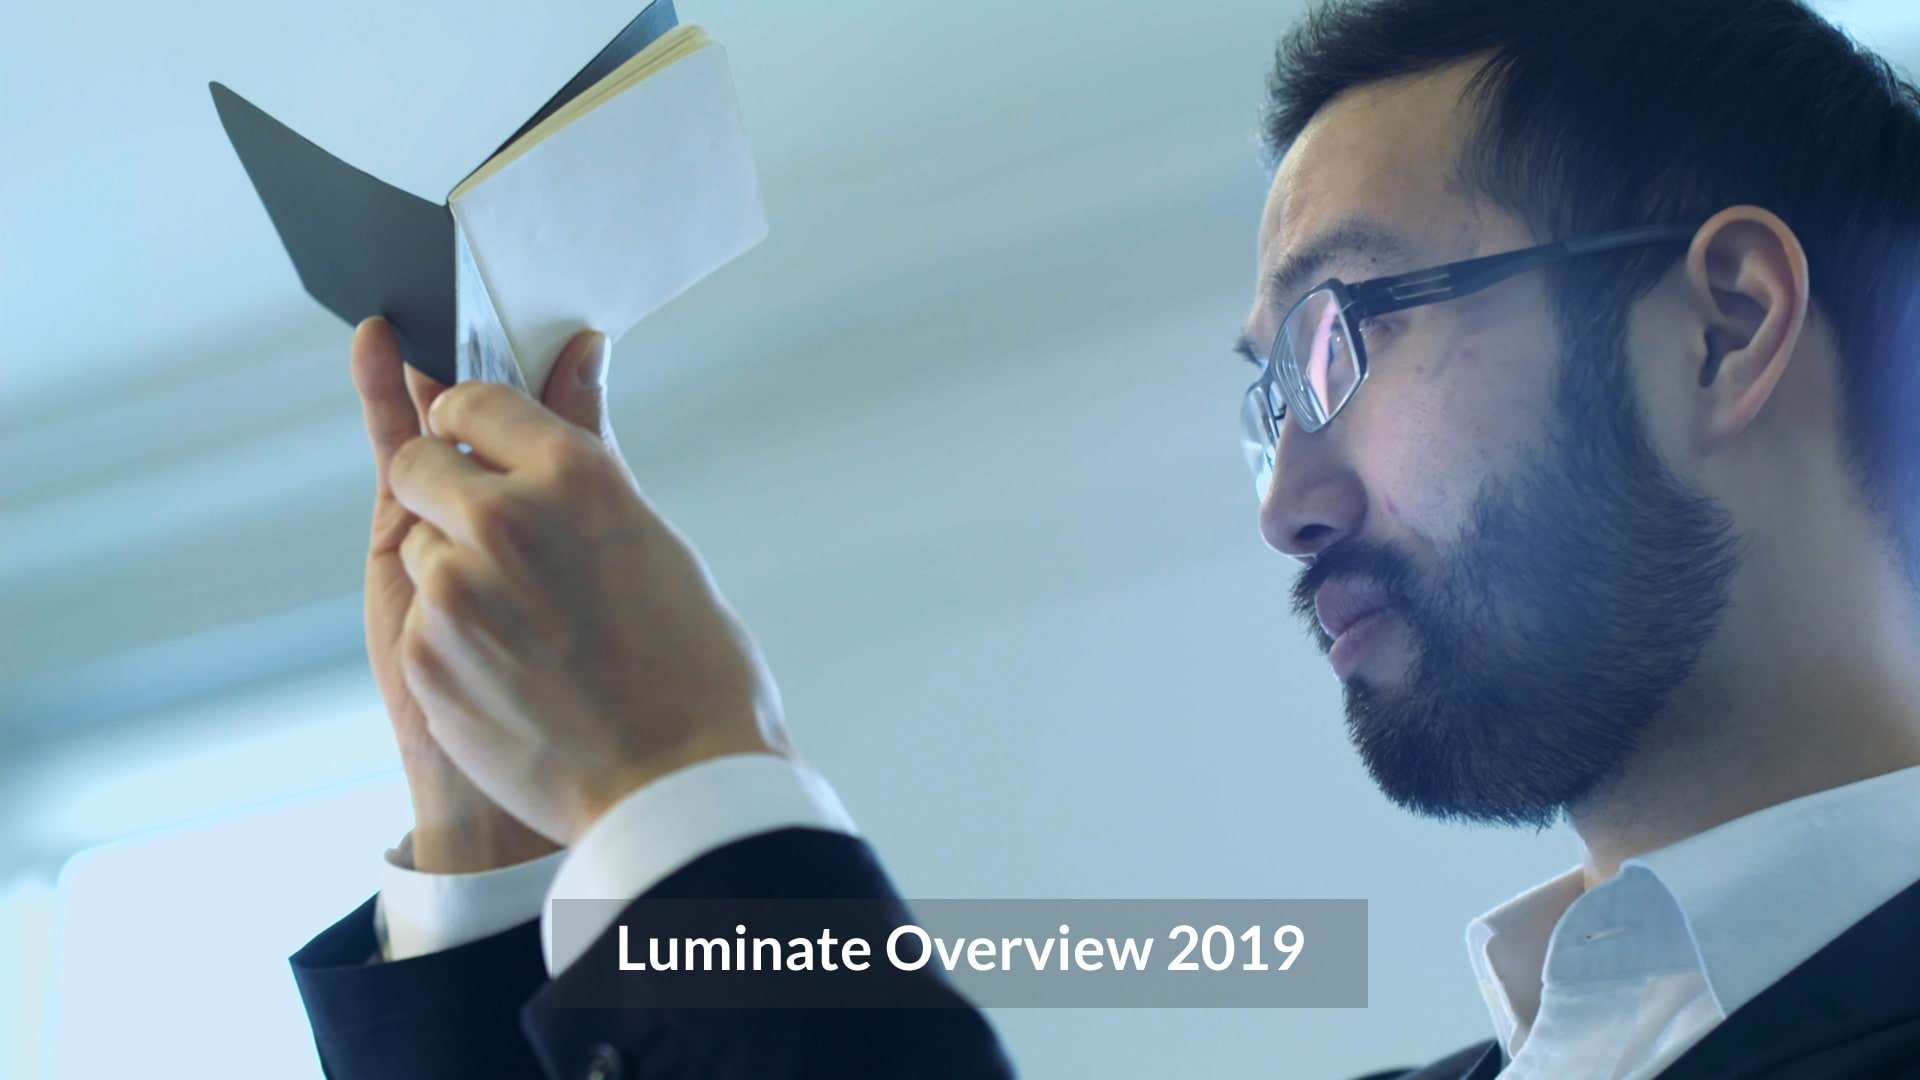 Luminate Overview